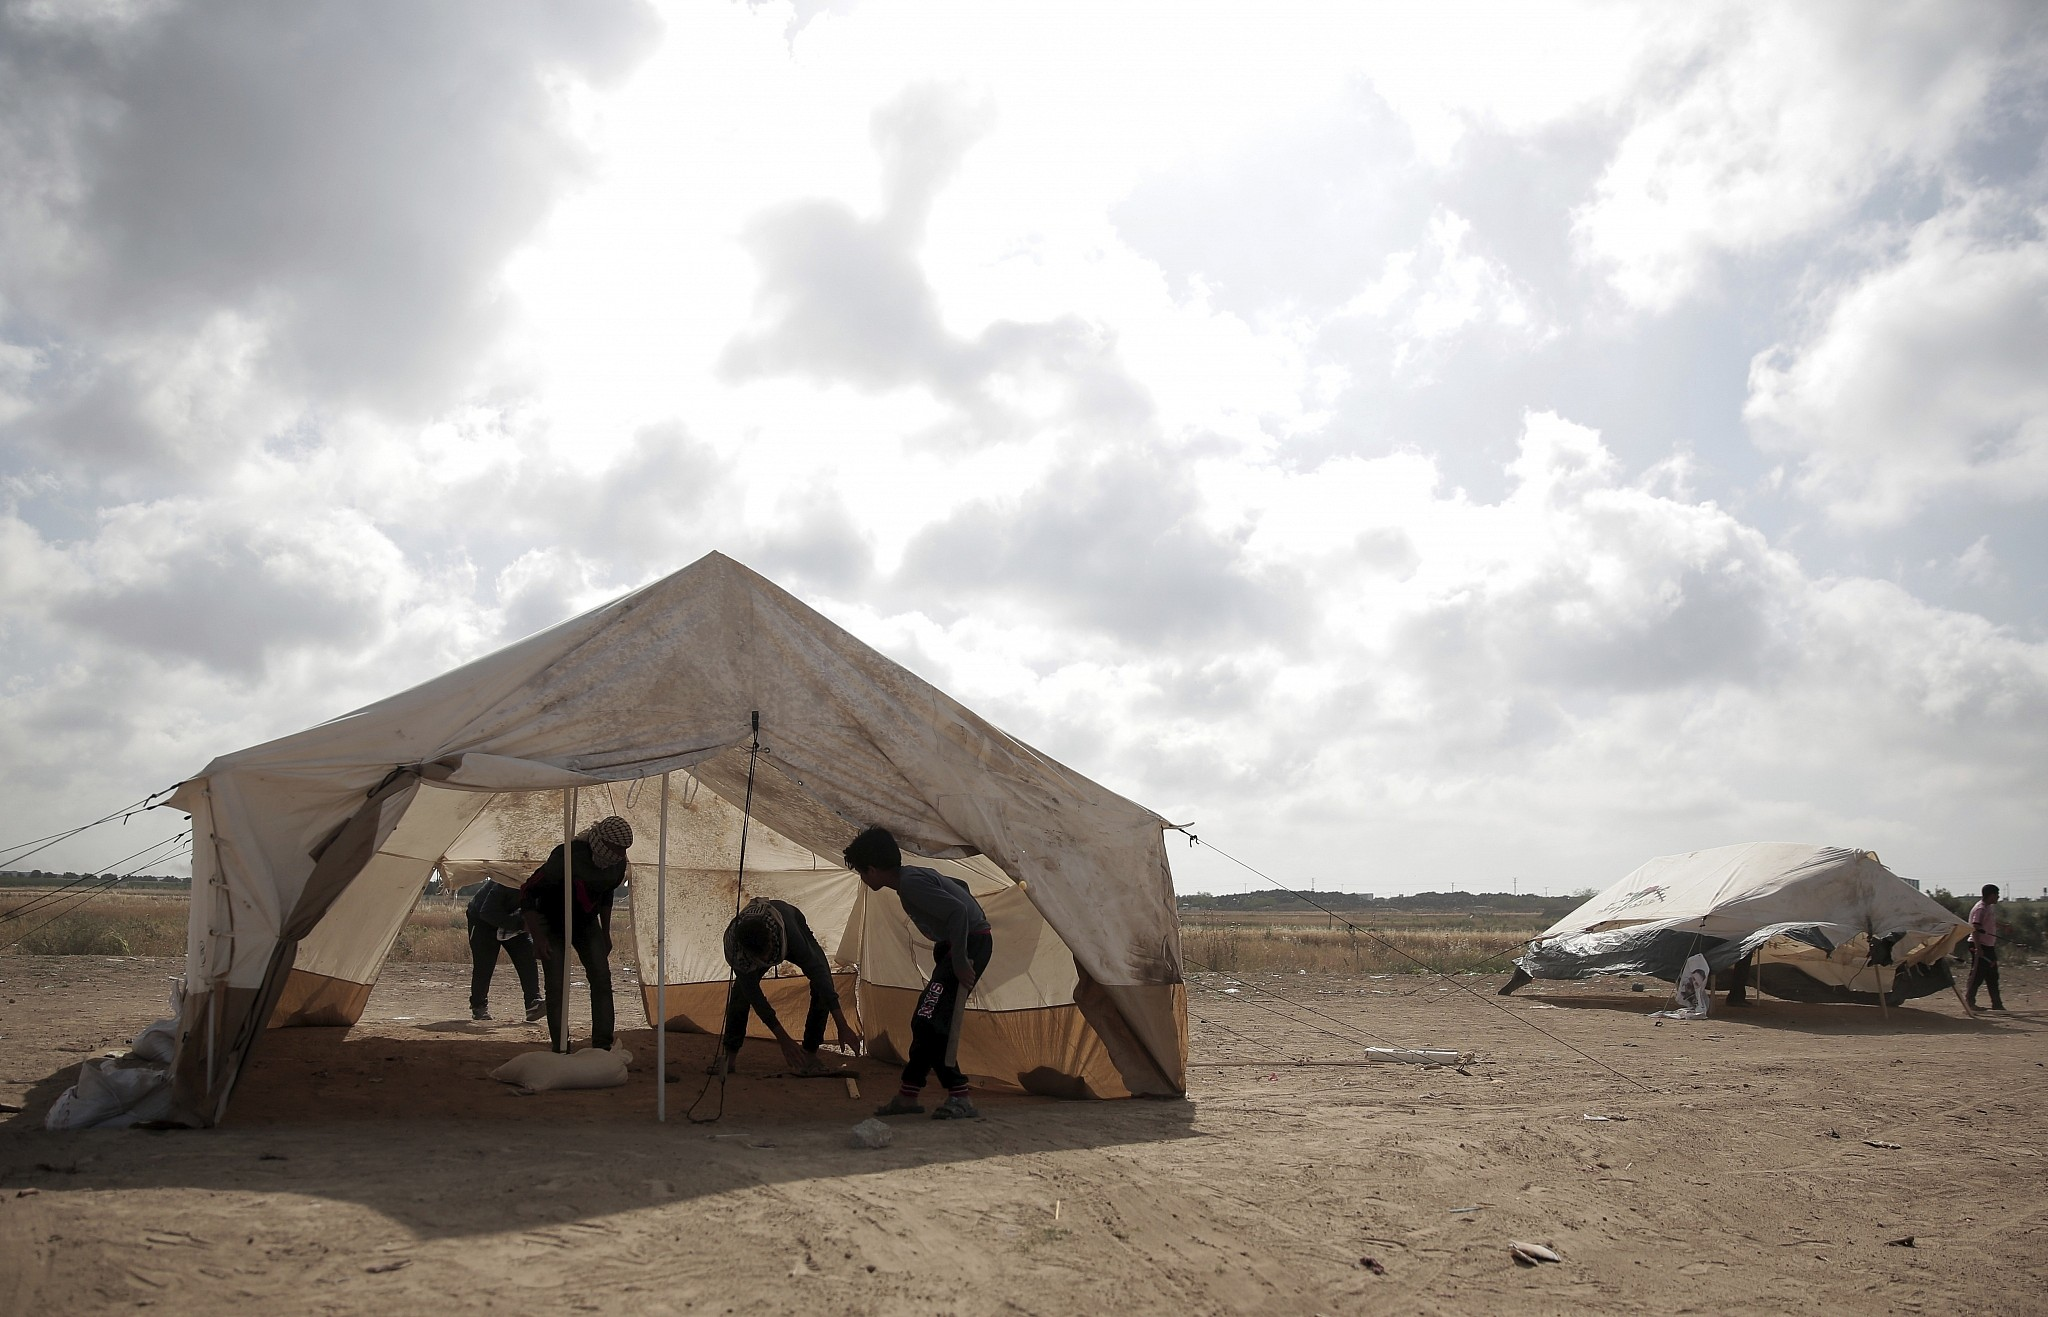 Palestinian protesters set up tents at the Gaza Strip's border with Israel Thursday